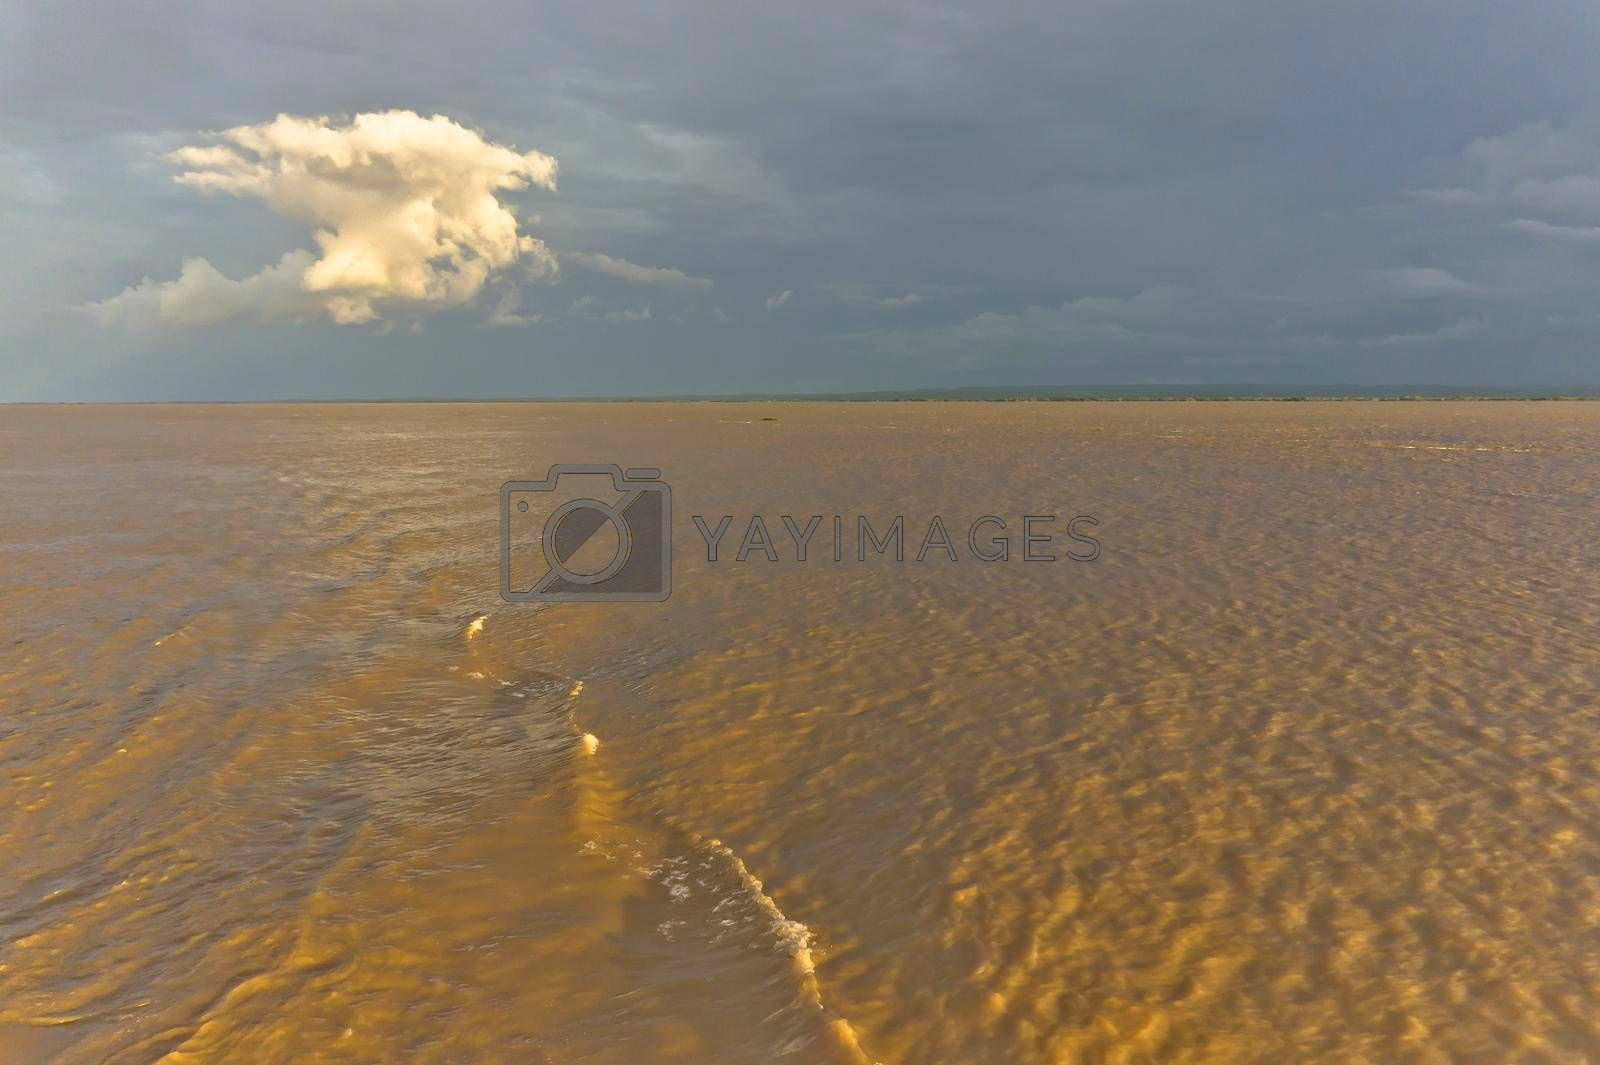 Amazon river, Sunset view, Brazil, South America